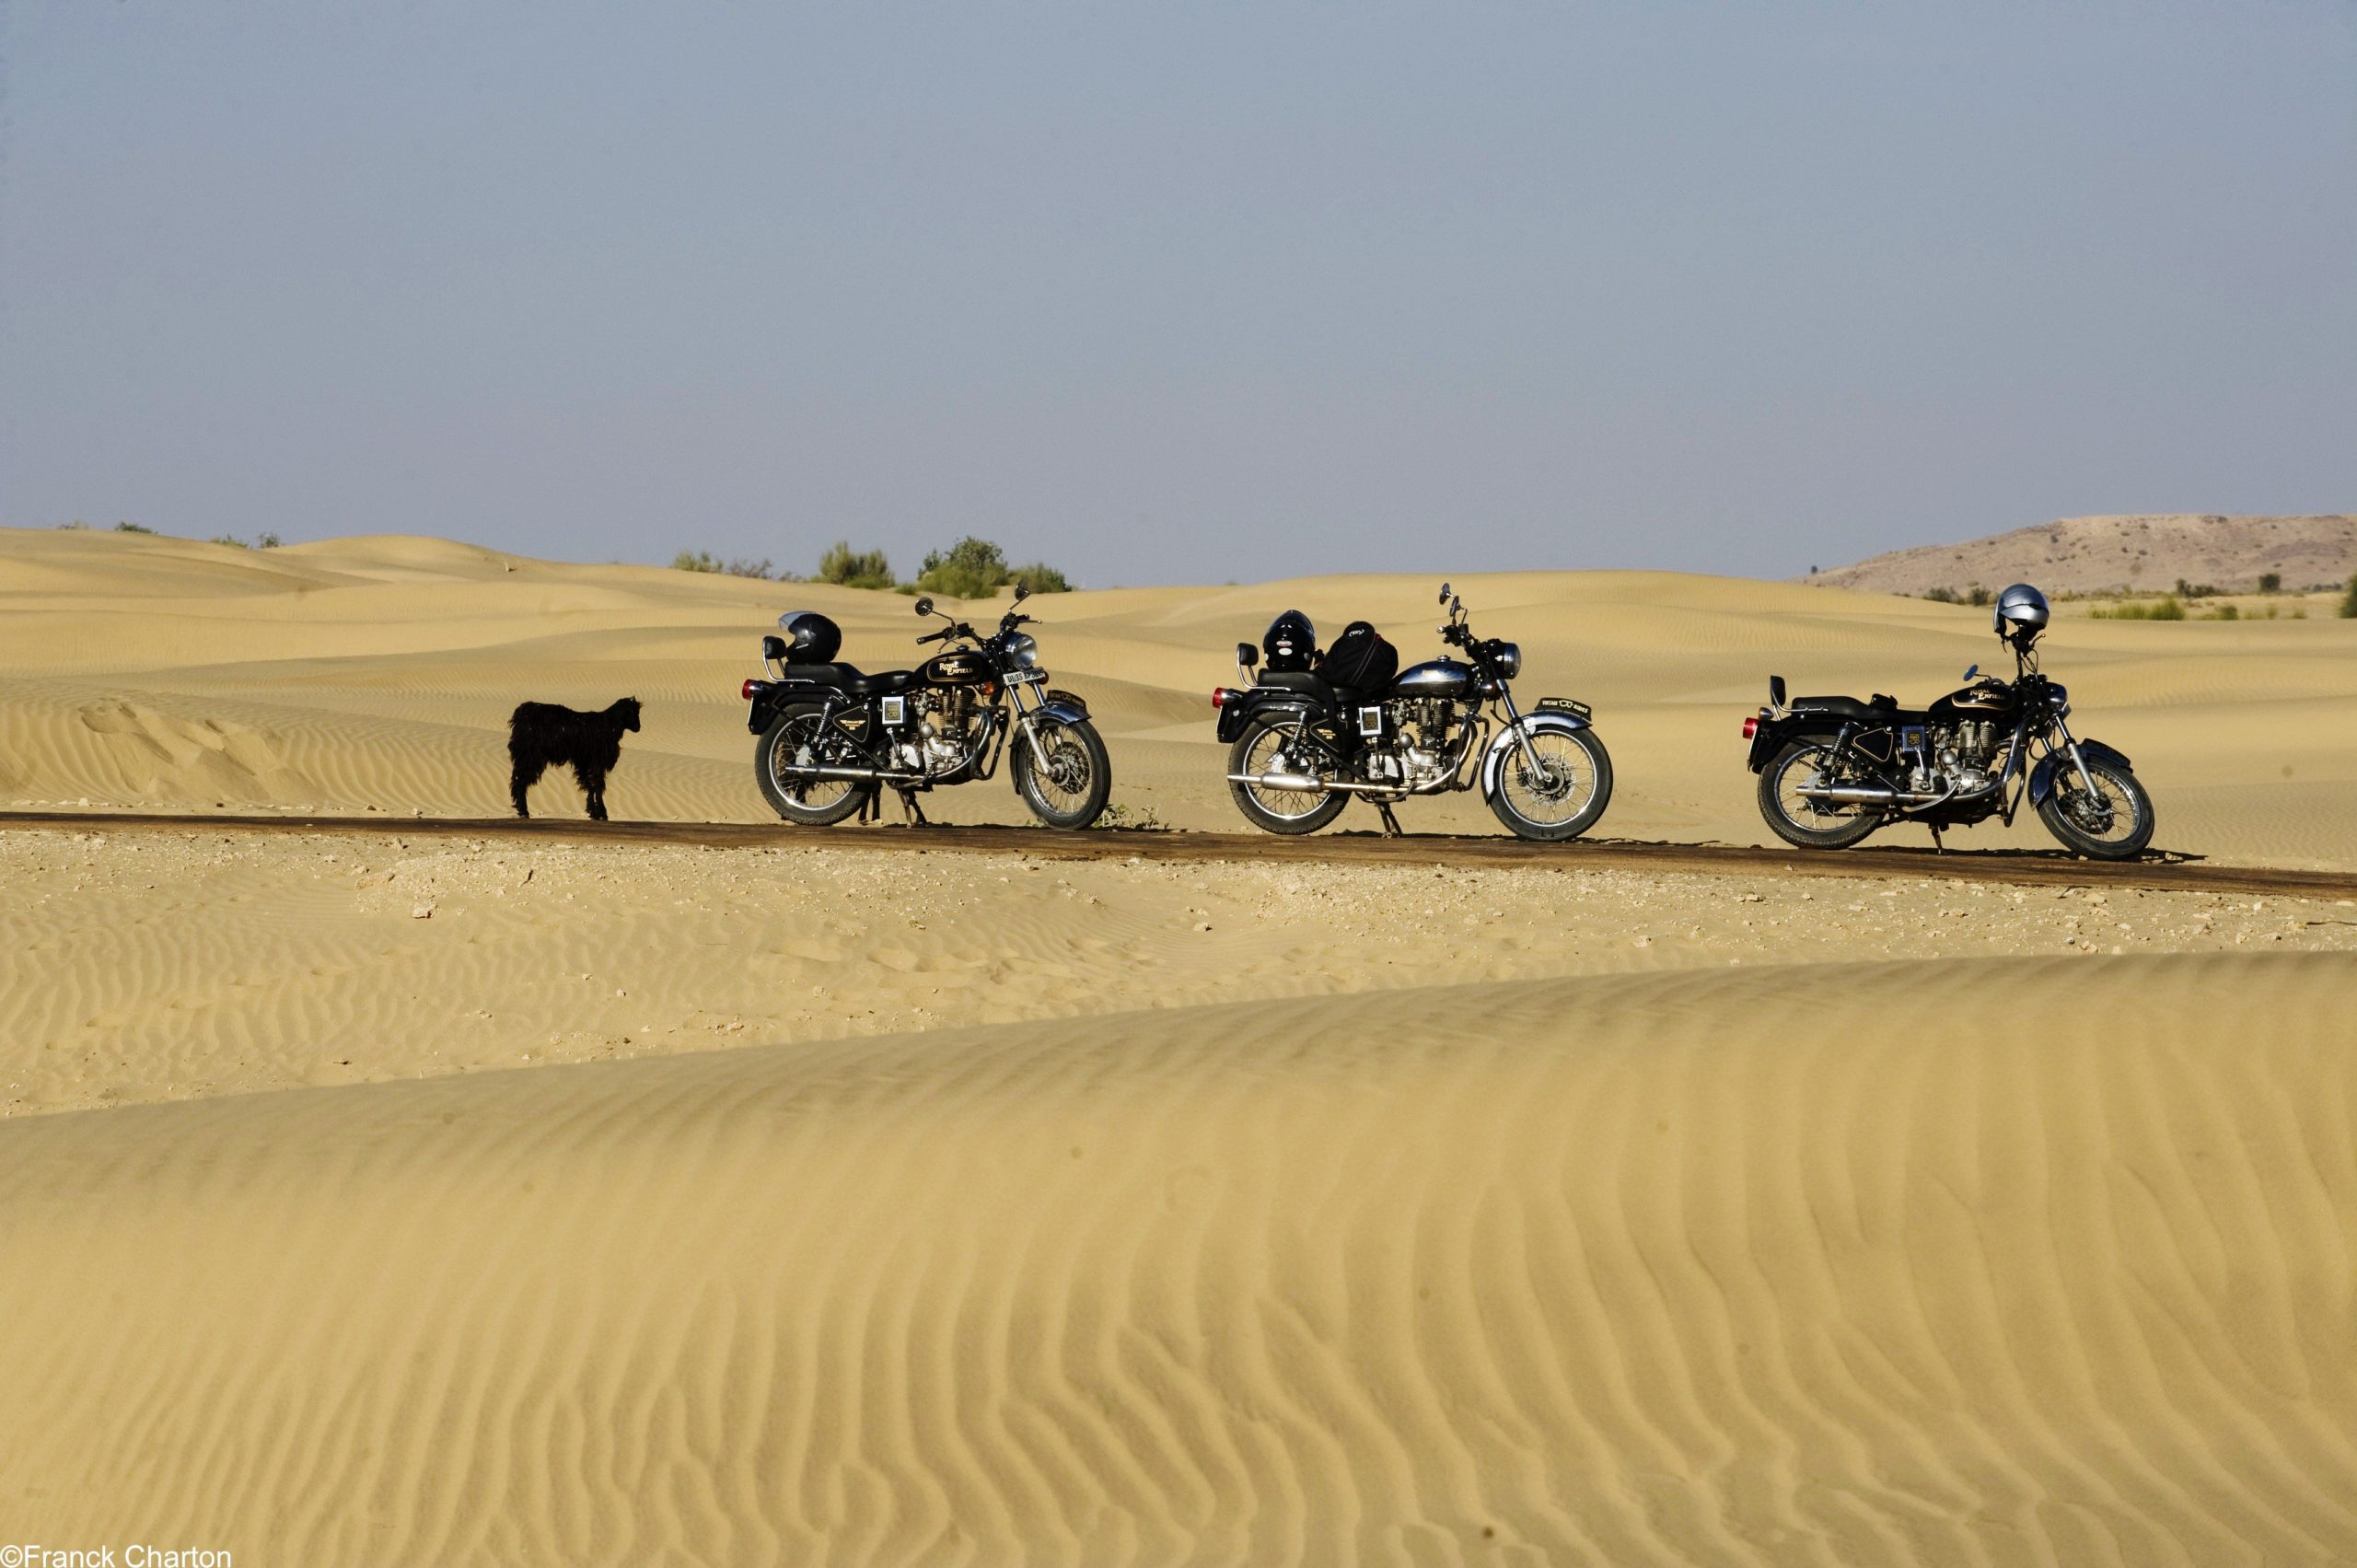 Motorcycle road trip India / North India - Rajasthan Essentials